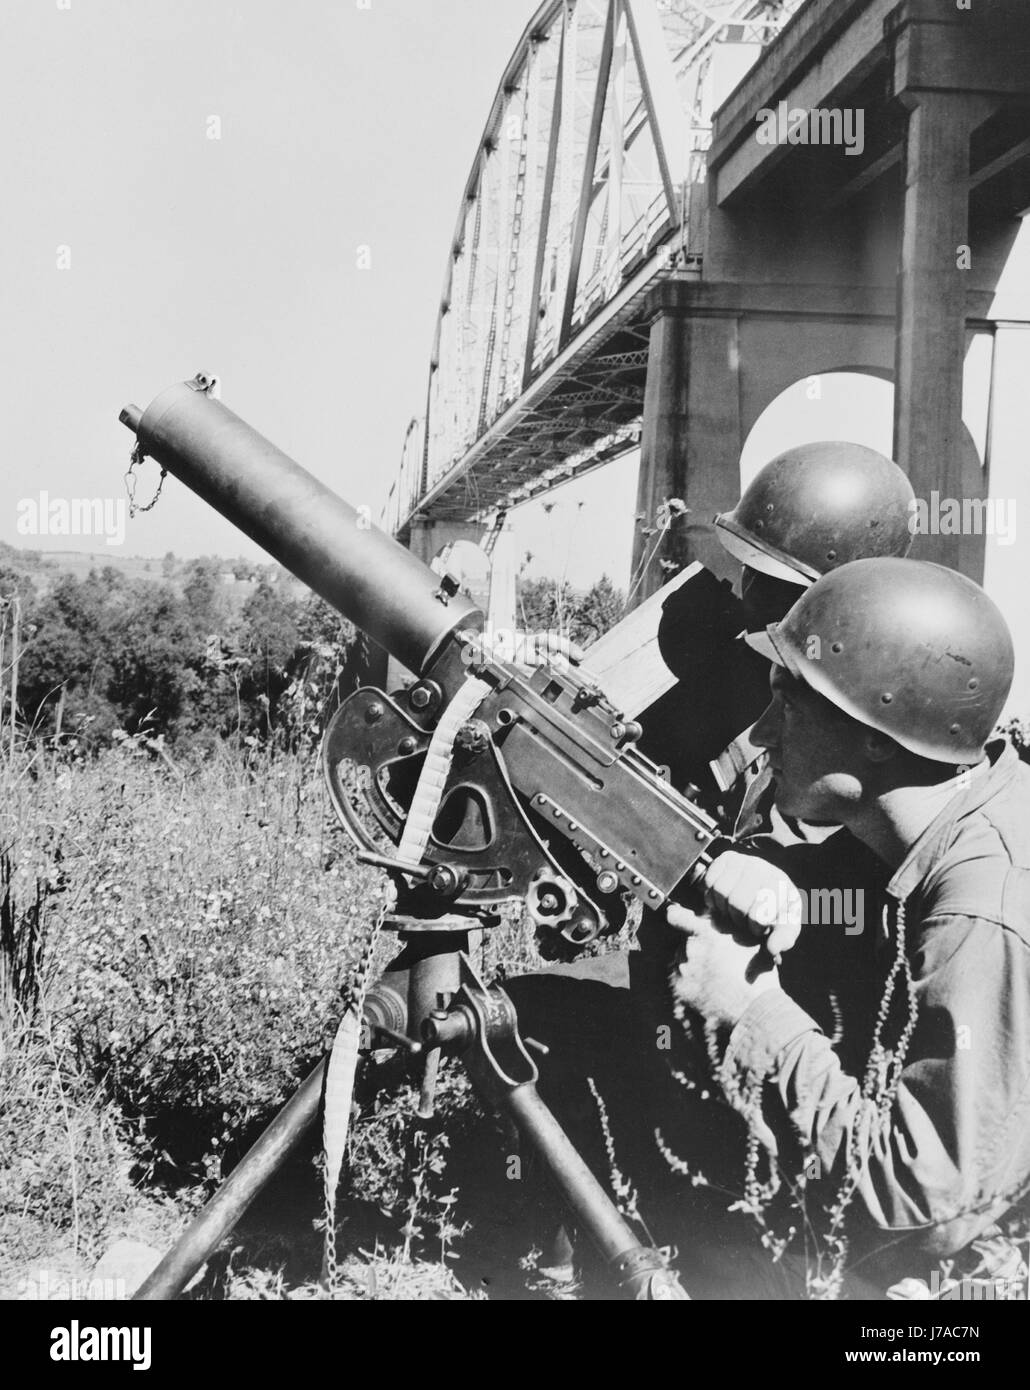 American soldiers with their heavy machine gun weapon, circa 1942. - Stock Image